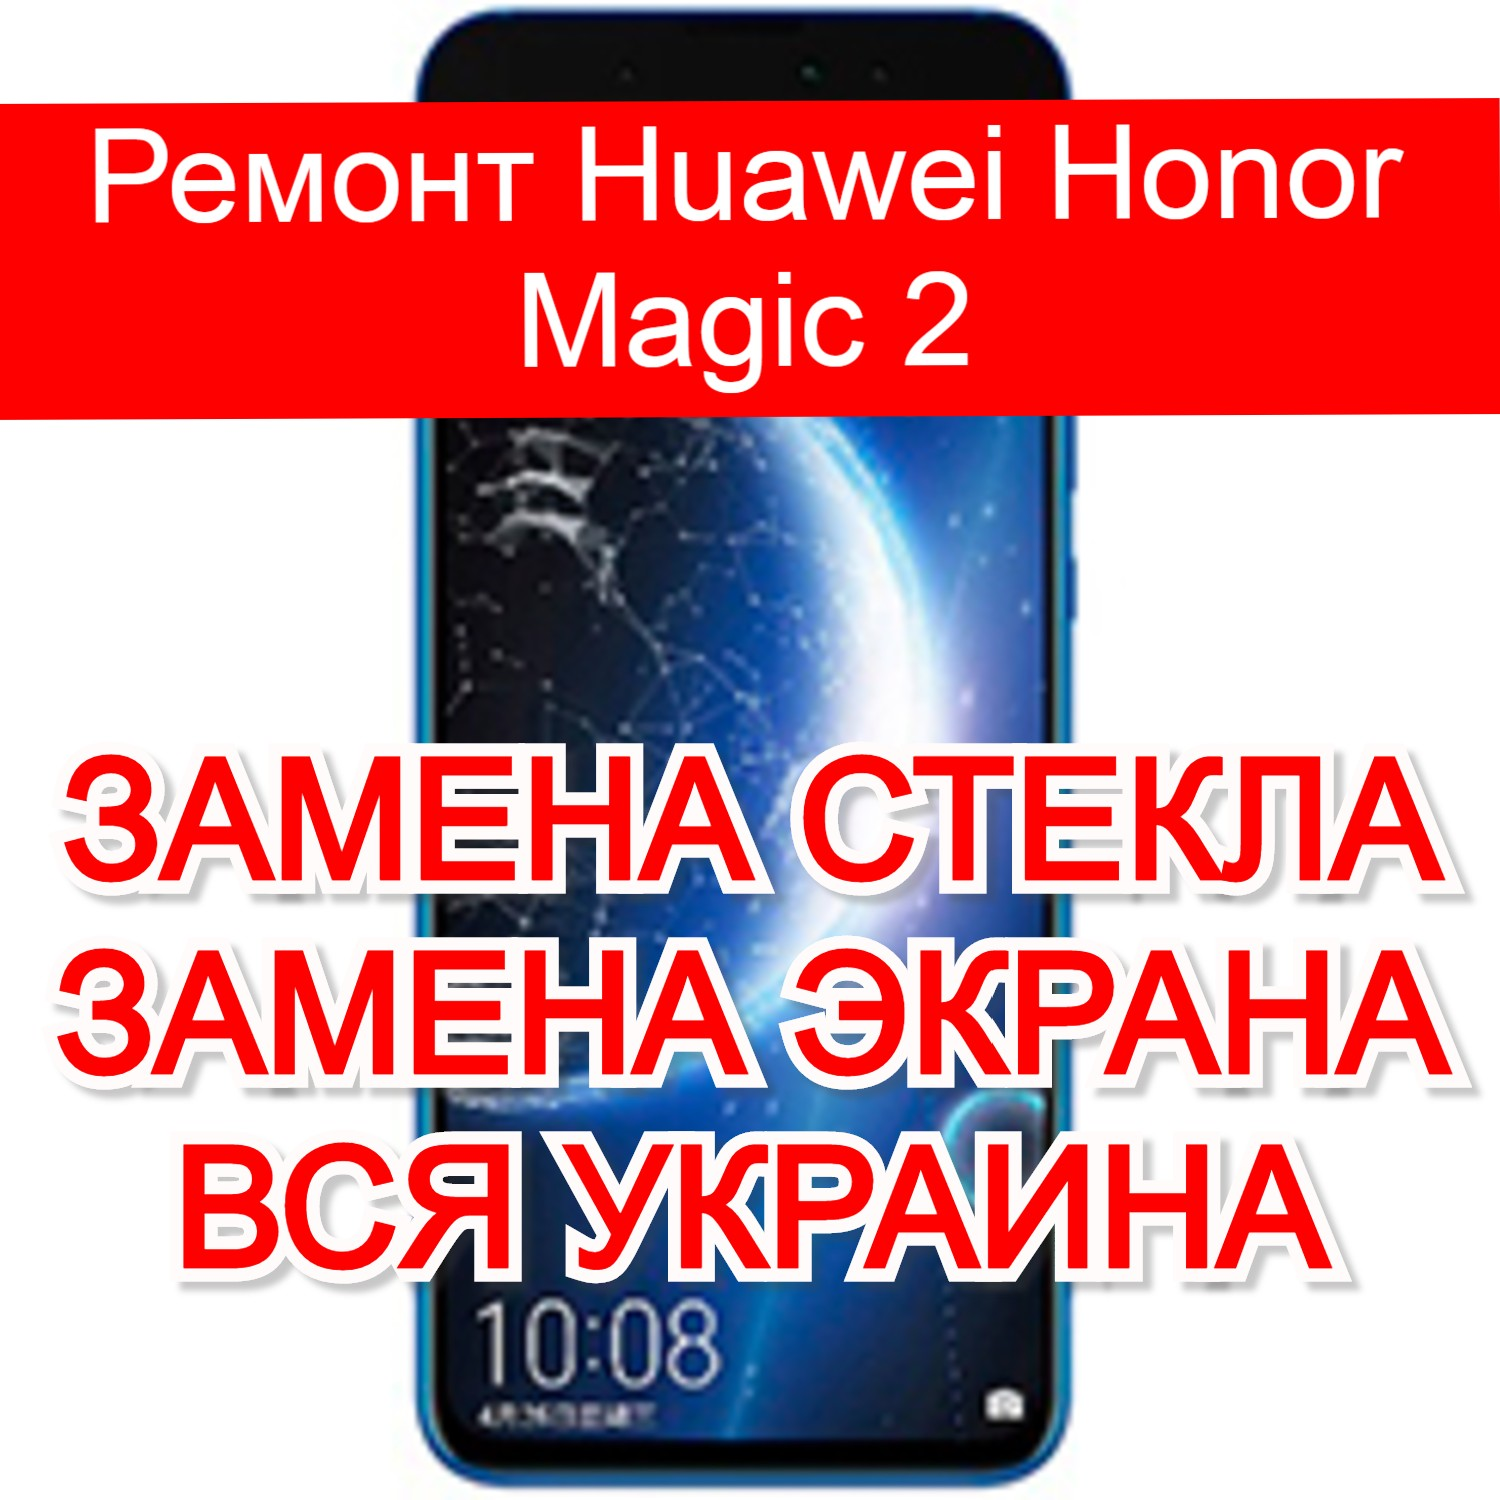 Ремонт Huawei Honor Magic 2 замена стекла и экрана